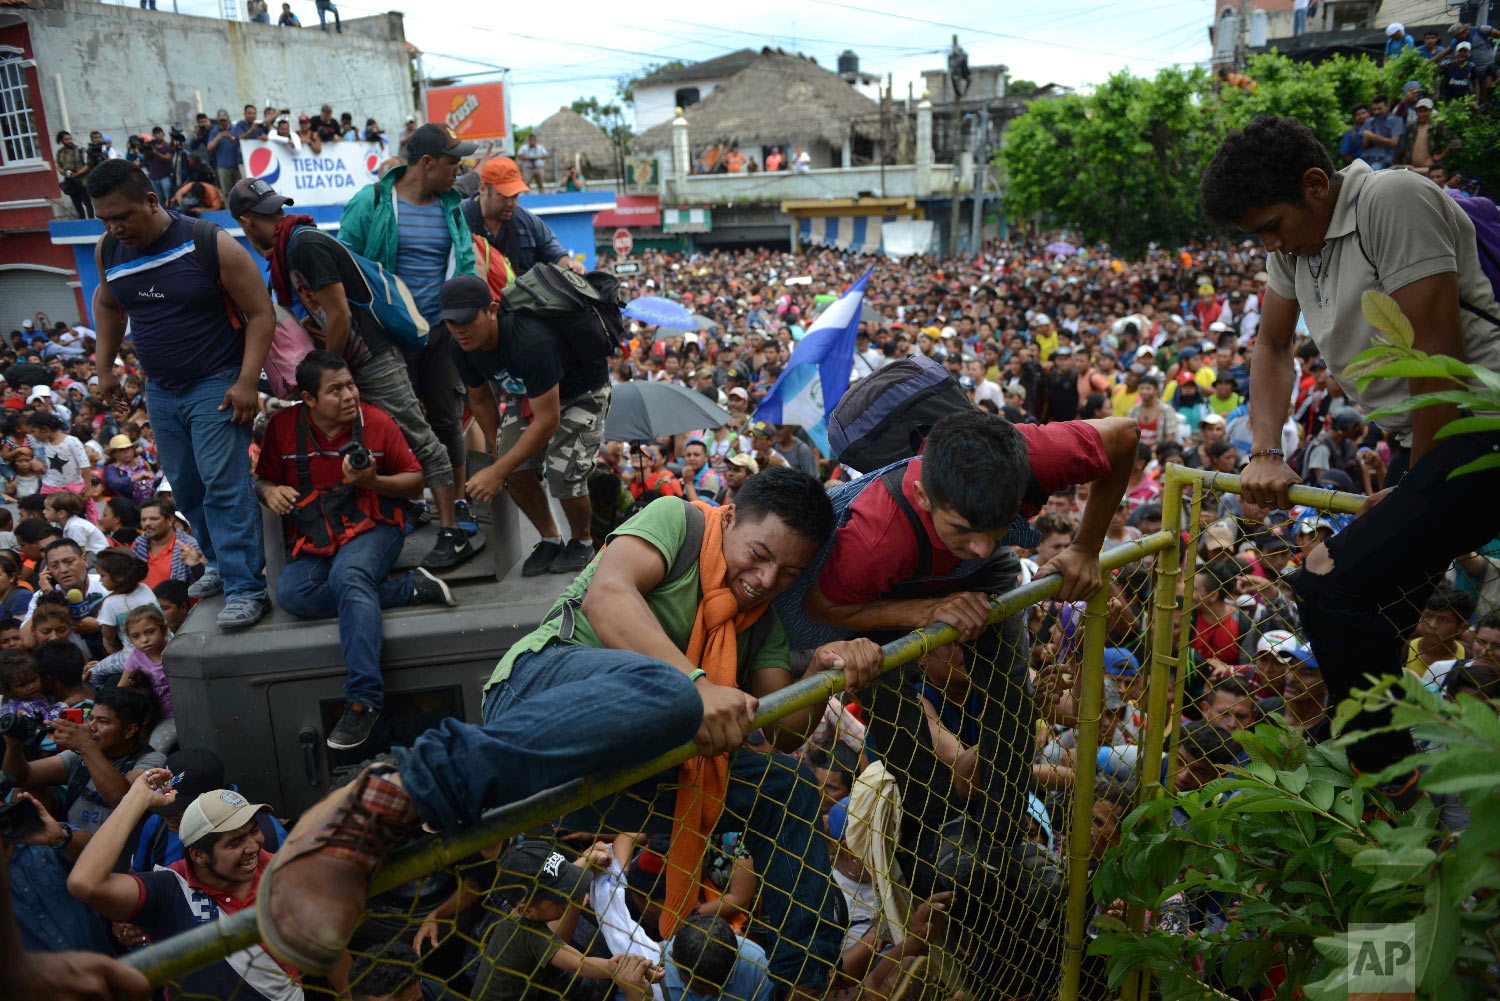 Young men climb over a fence in Tecun Uman, Guatemala, as thousands of Central American migrants rush across the border towards Mexico on Oct. 19, 2018. (AP Photo/Oliver de Ros)